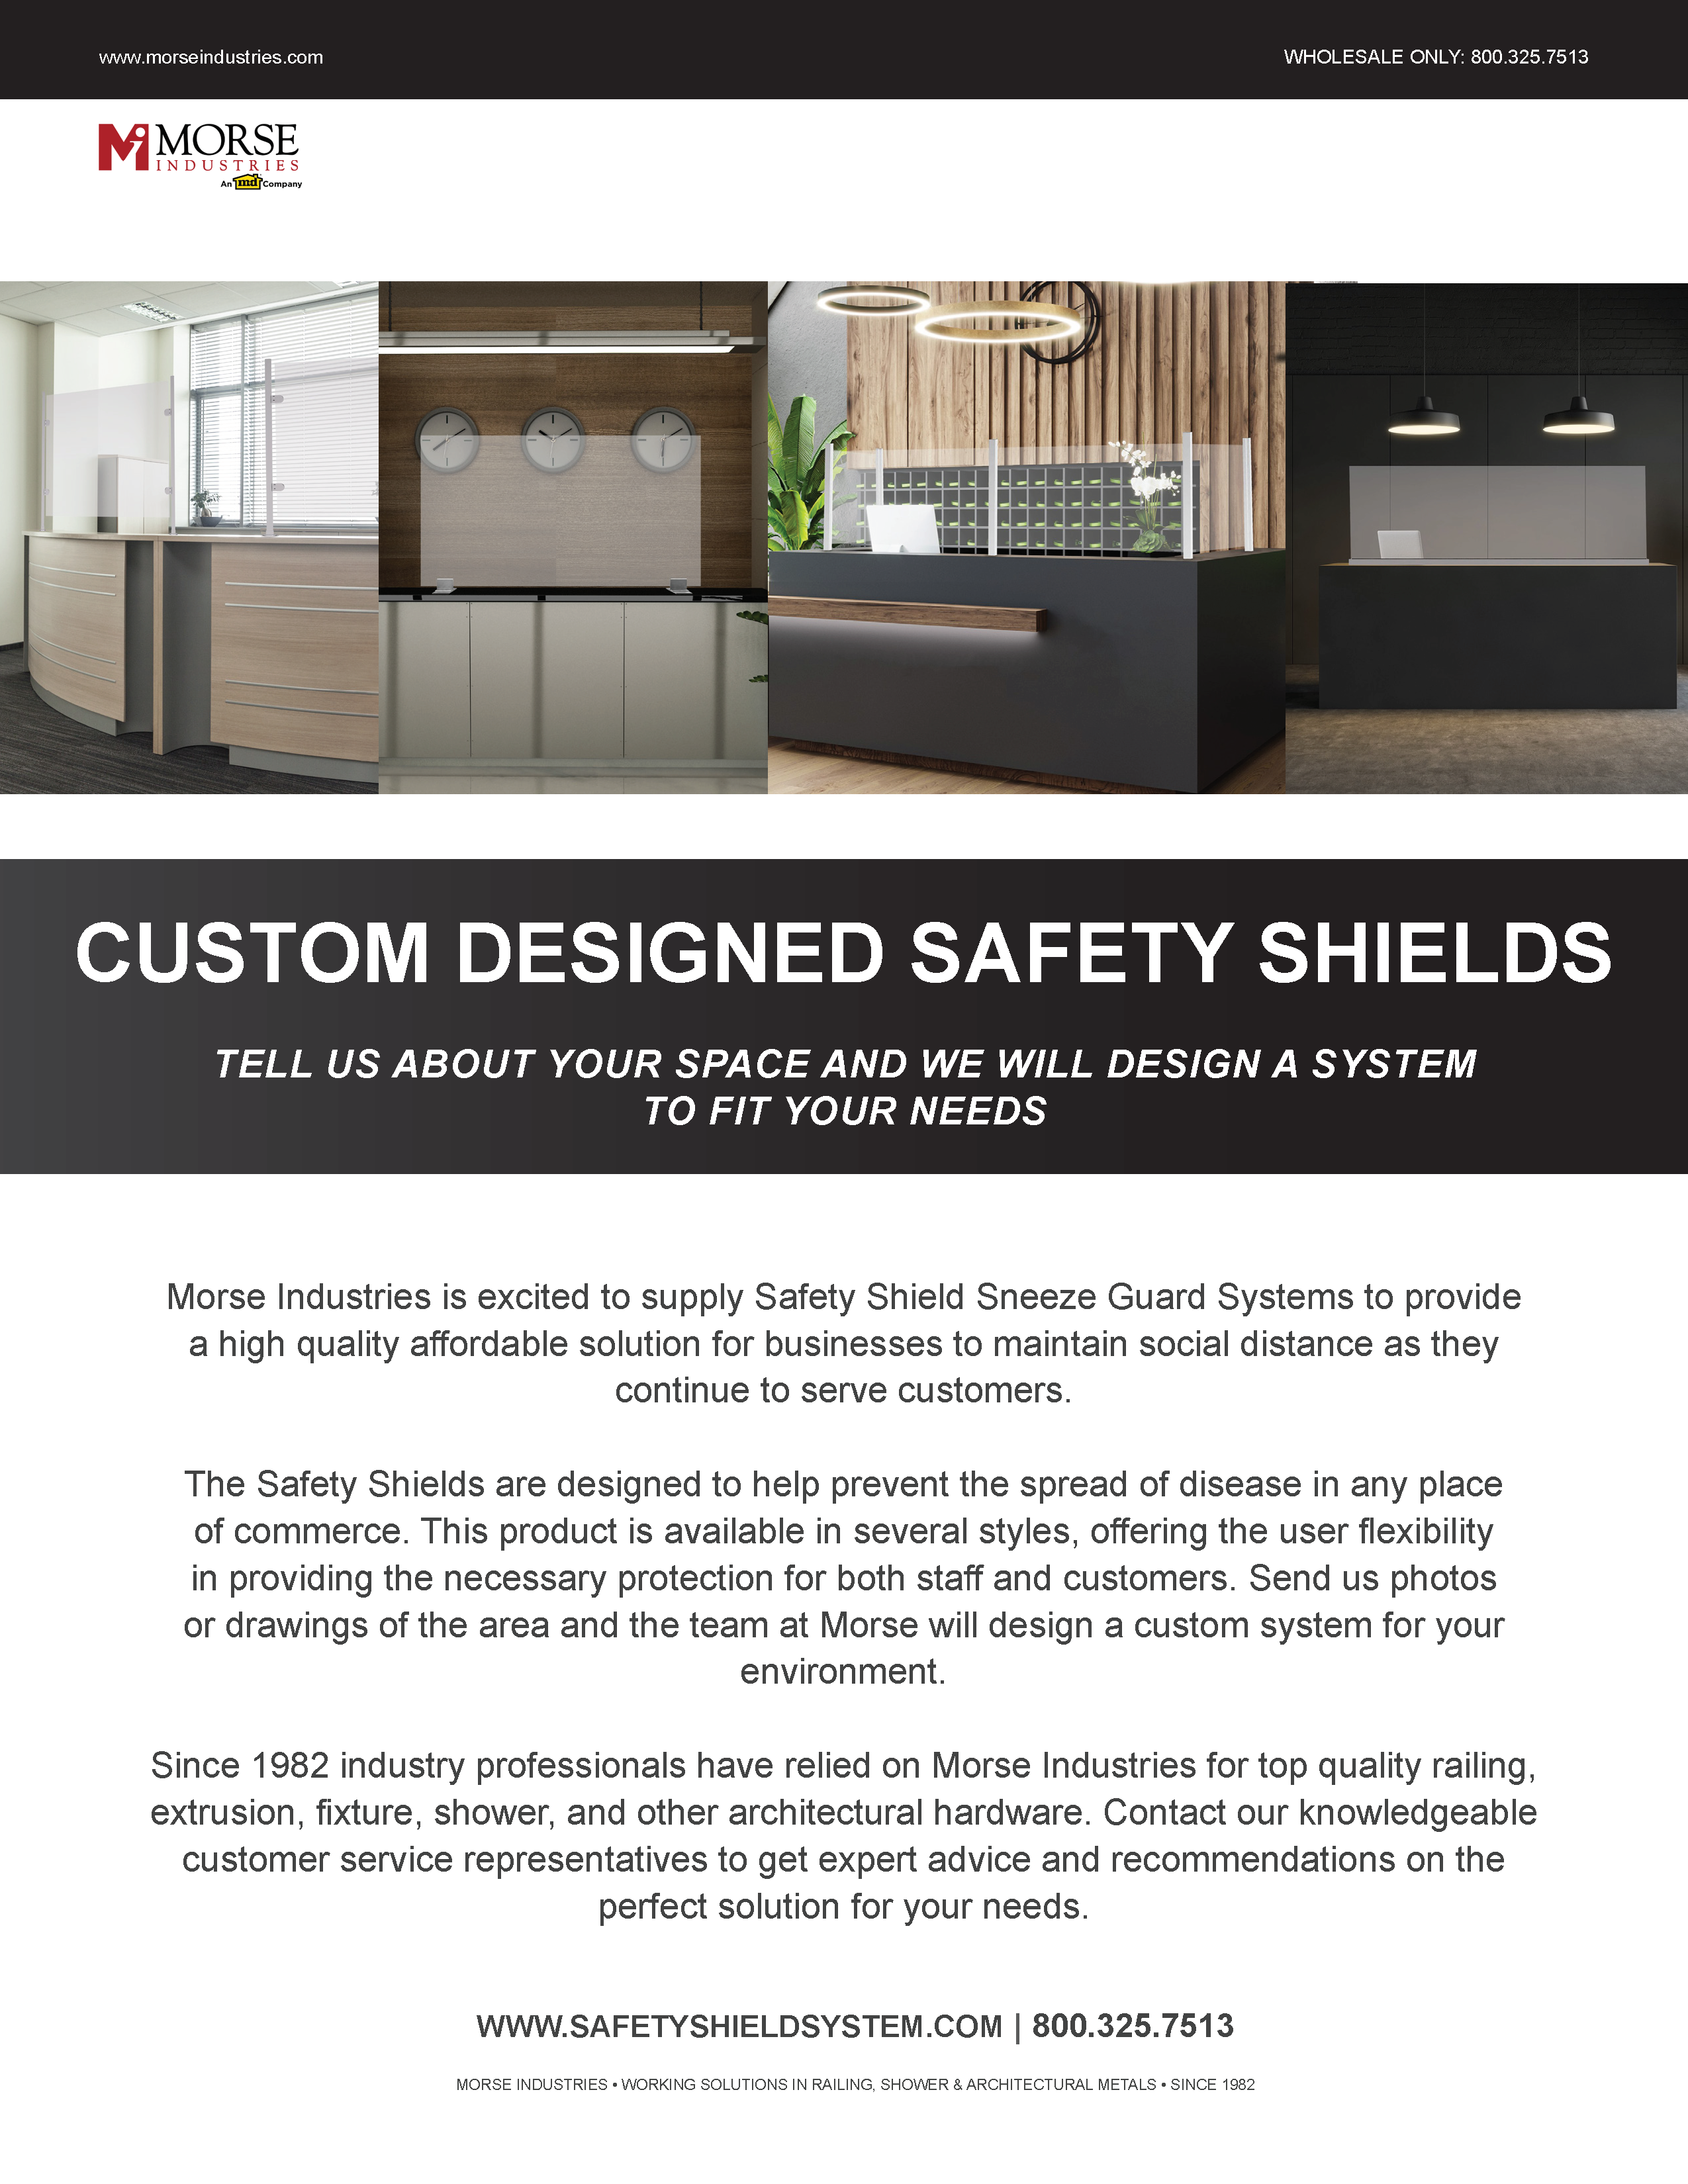 Safety Shield Design Guide